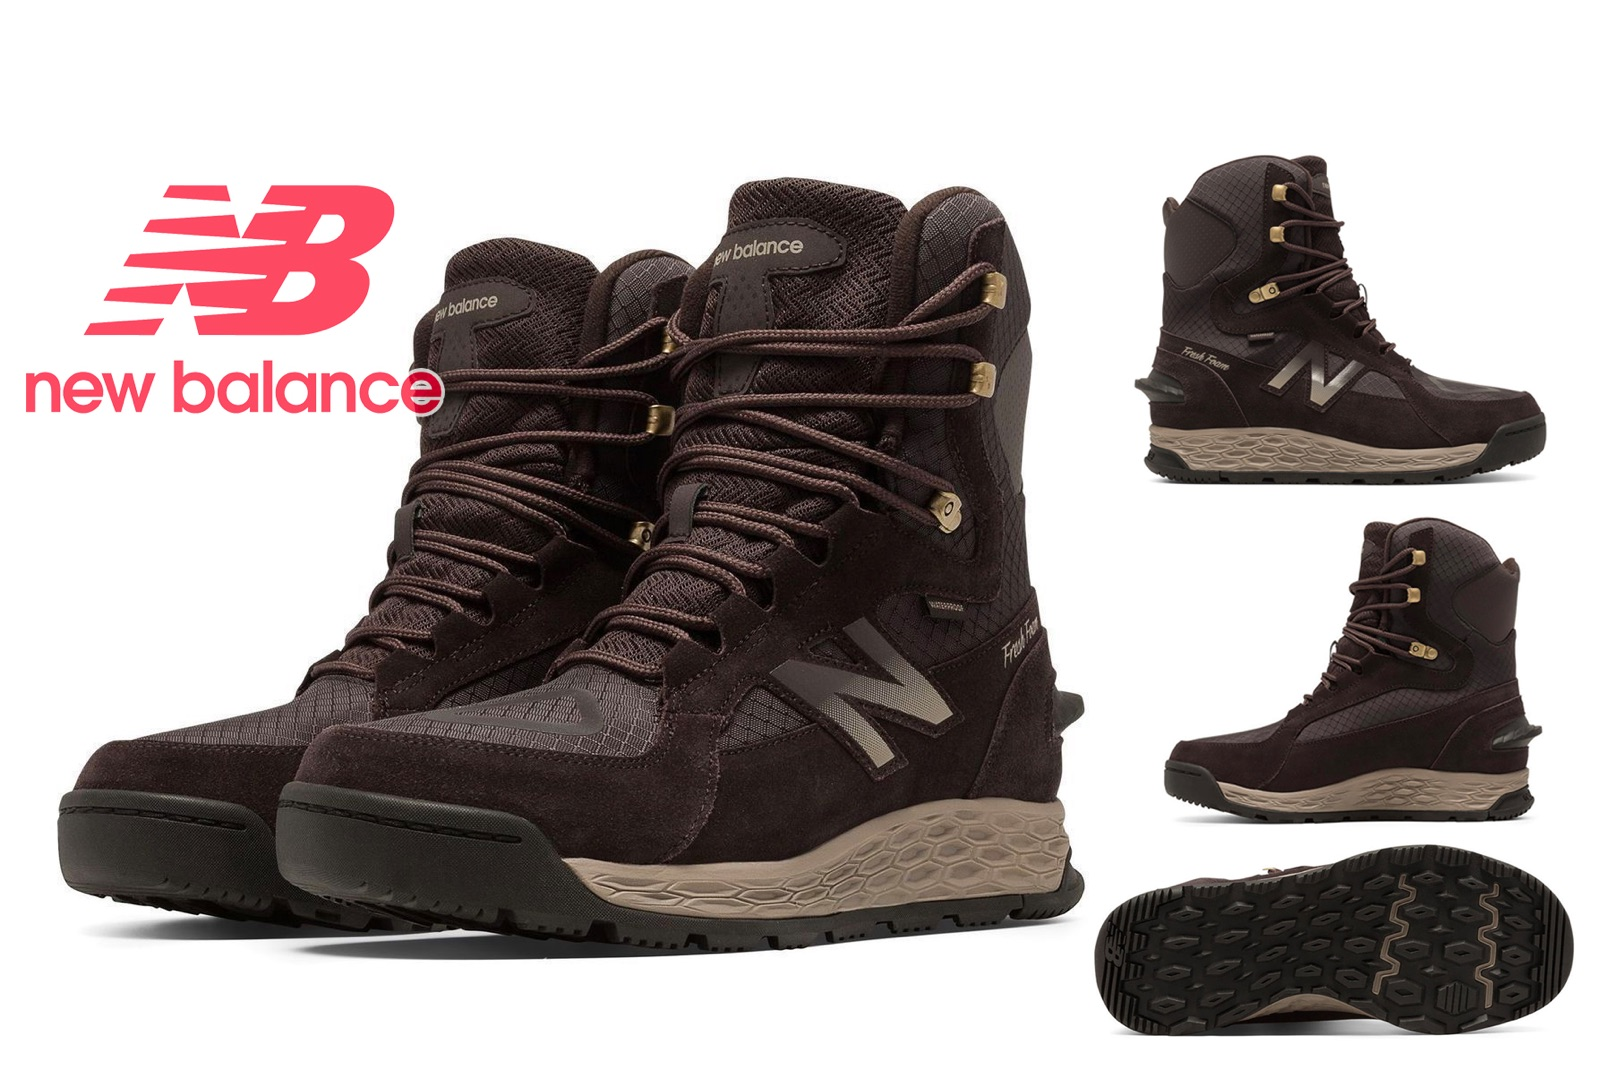 New Balance BM1000BR Men's Fresh Foam 1000 Cold Weather Insulated Boots by New Balance